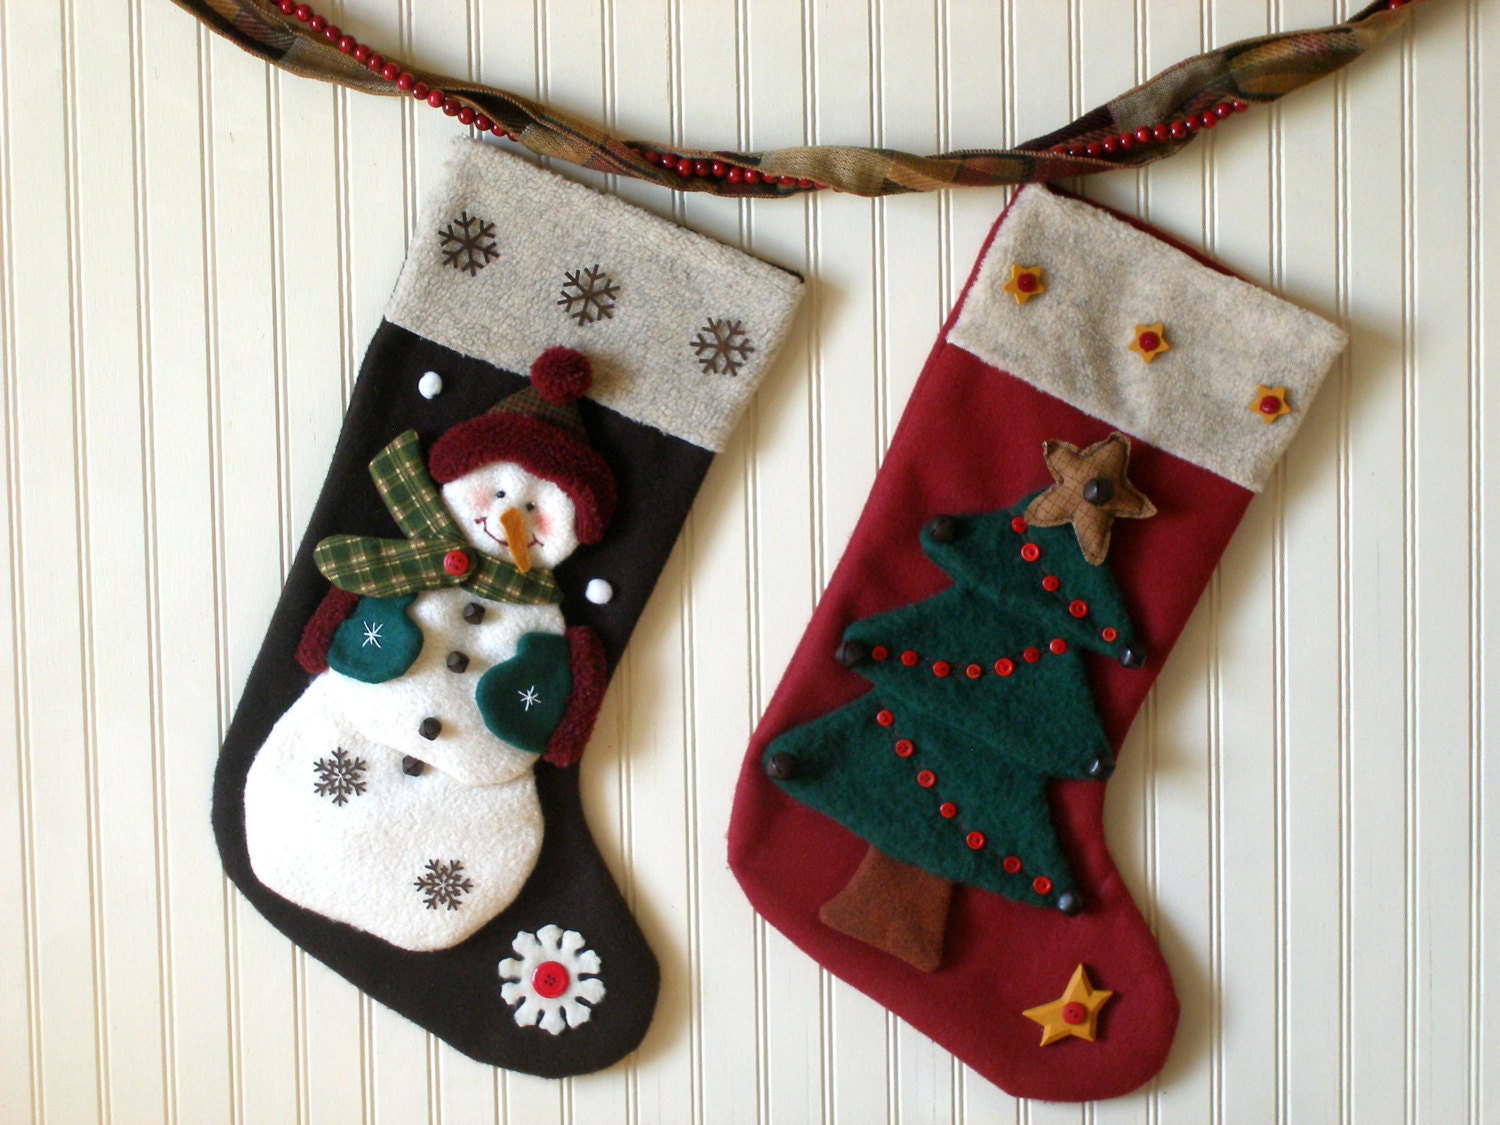 Cut out a large piece of white felt and measure it against the top of the stocking for the cuff. You want the pieces to cover 3/4in of the top of the stocking and to extend 1/2in or so beyond the edges of the stocking so they can be stitched together later.